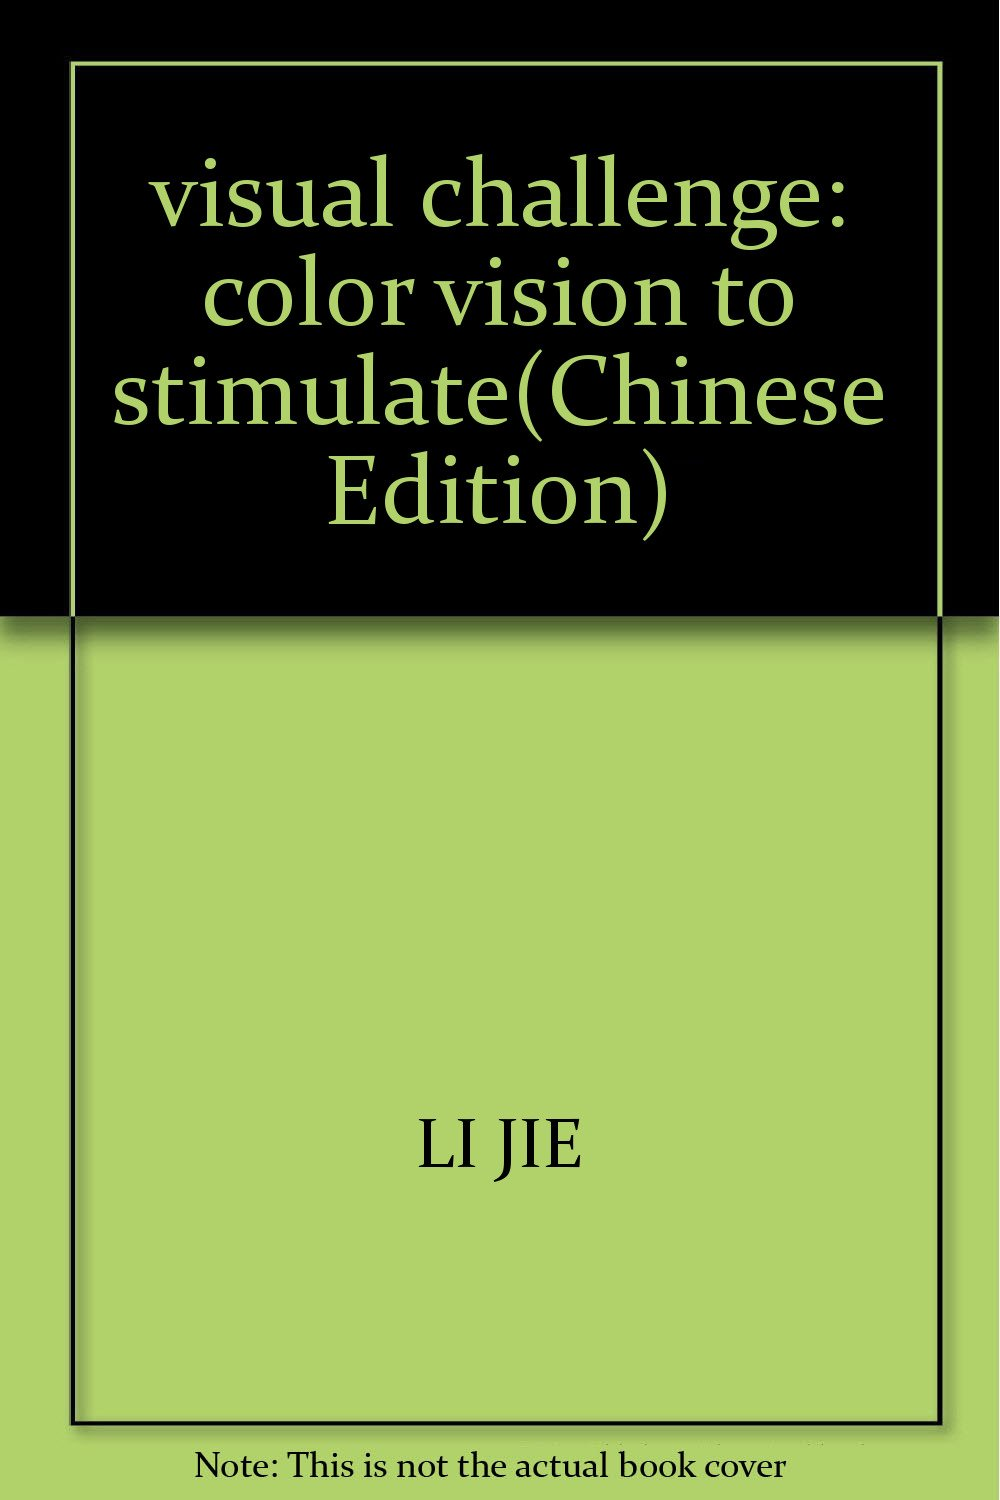 Download visual challenge: color vision to stimulate(Chinese Edition) pdf